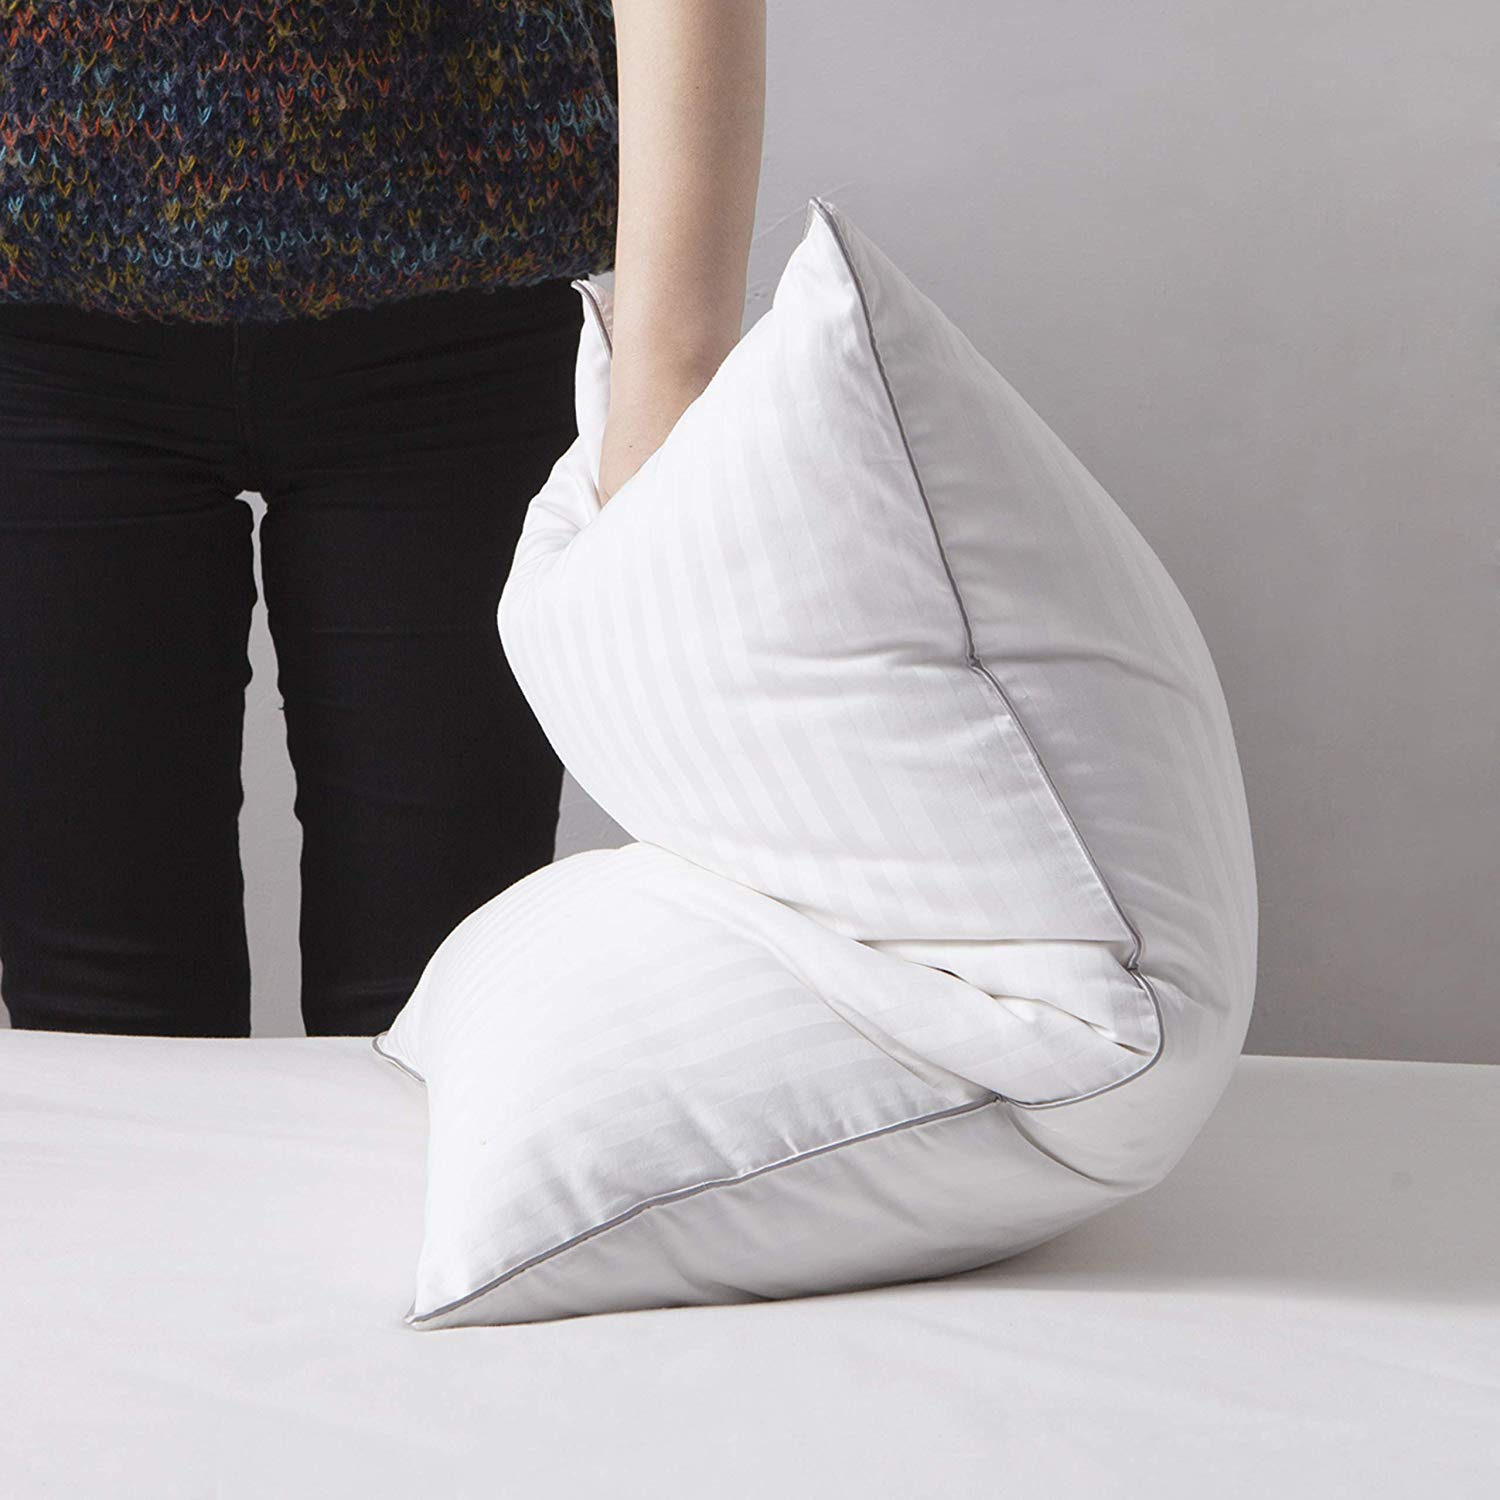 Everyone sleeps differently and as a result, everyone needs something different in a pillow. These are the 10 best pillows for all types of sleepers.